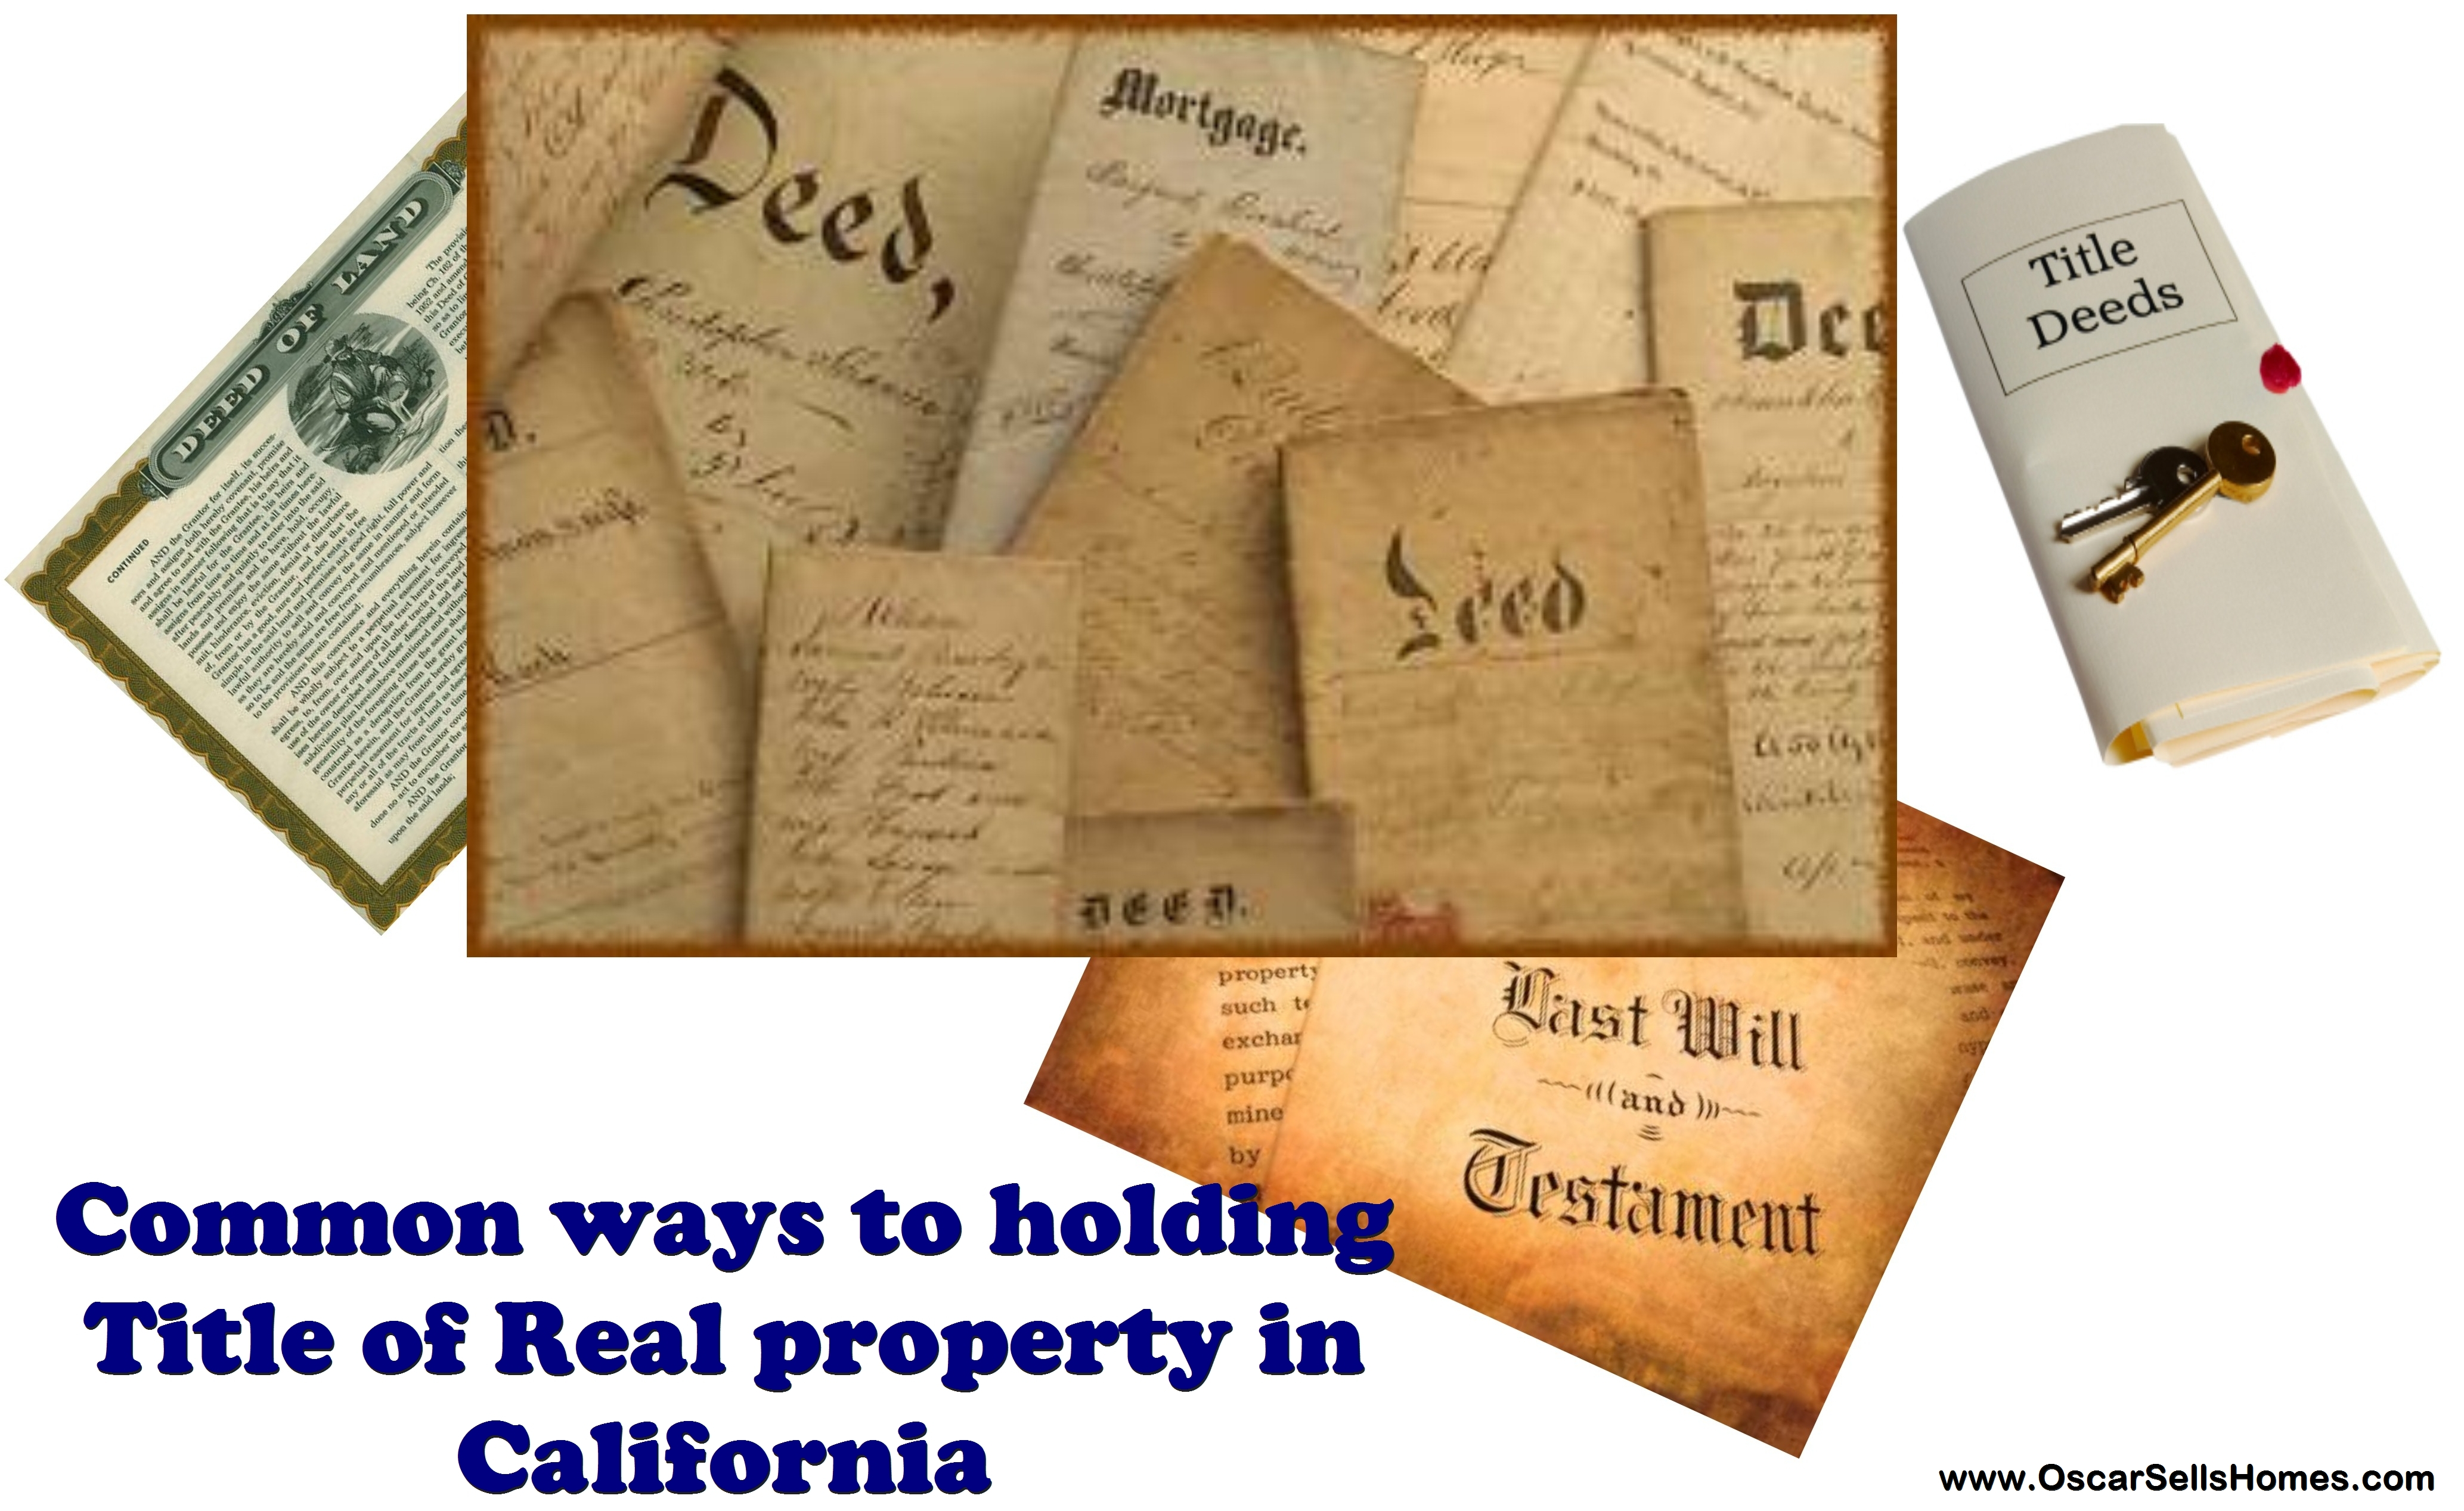 Common ways of holding Title of Real Property in CA - Oscar Castillo - Broker Associate San Diego - www.OscarSellsHomes.com